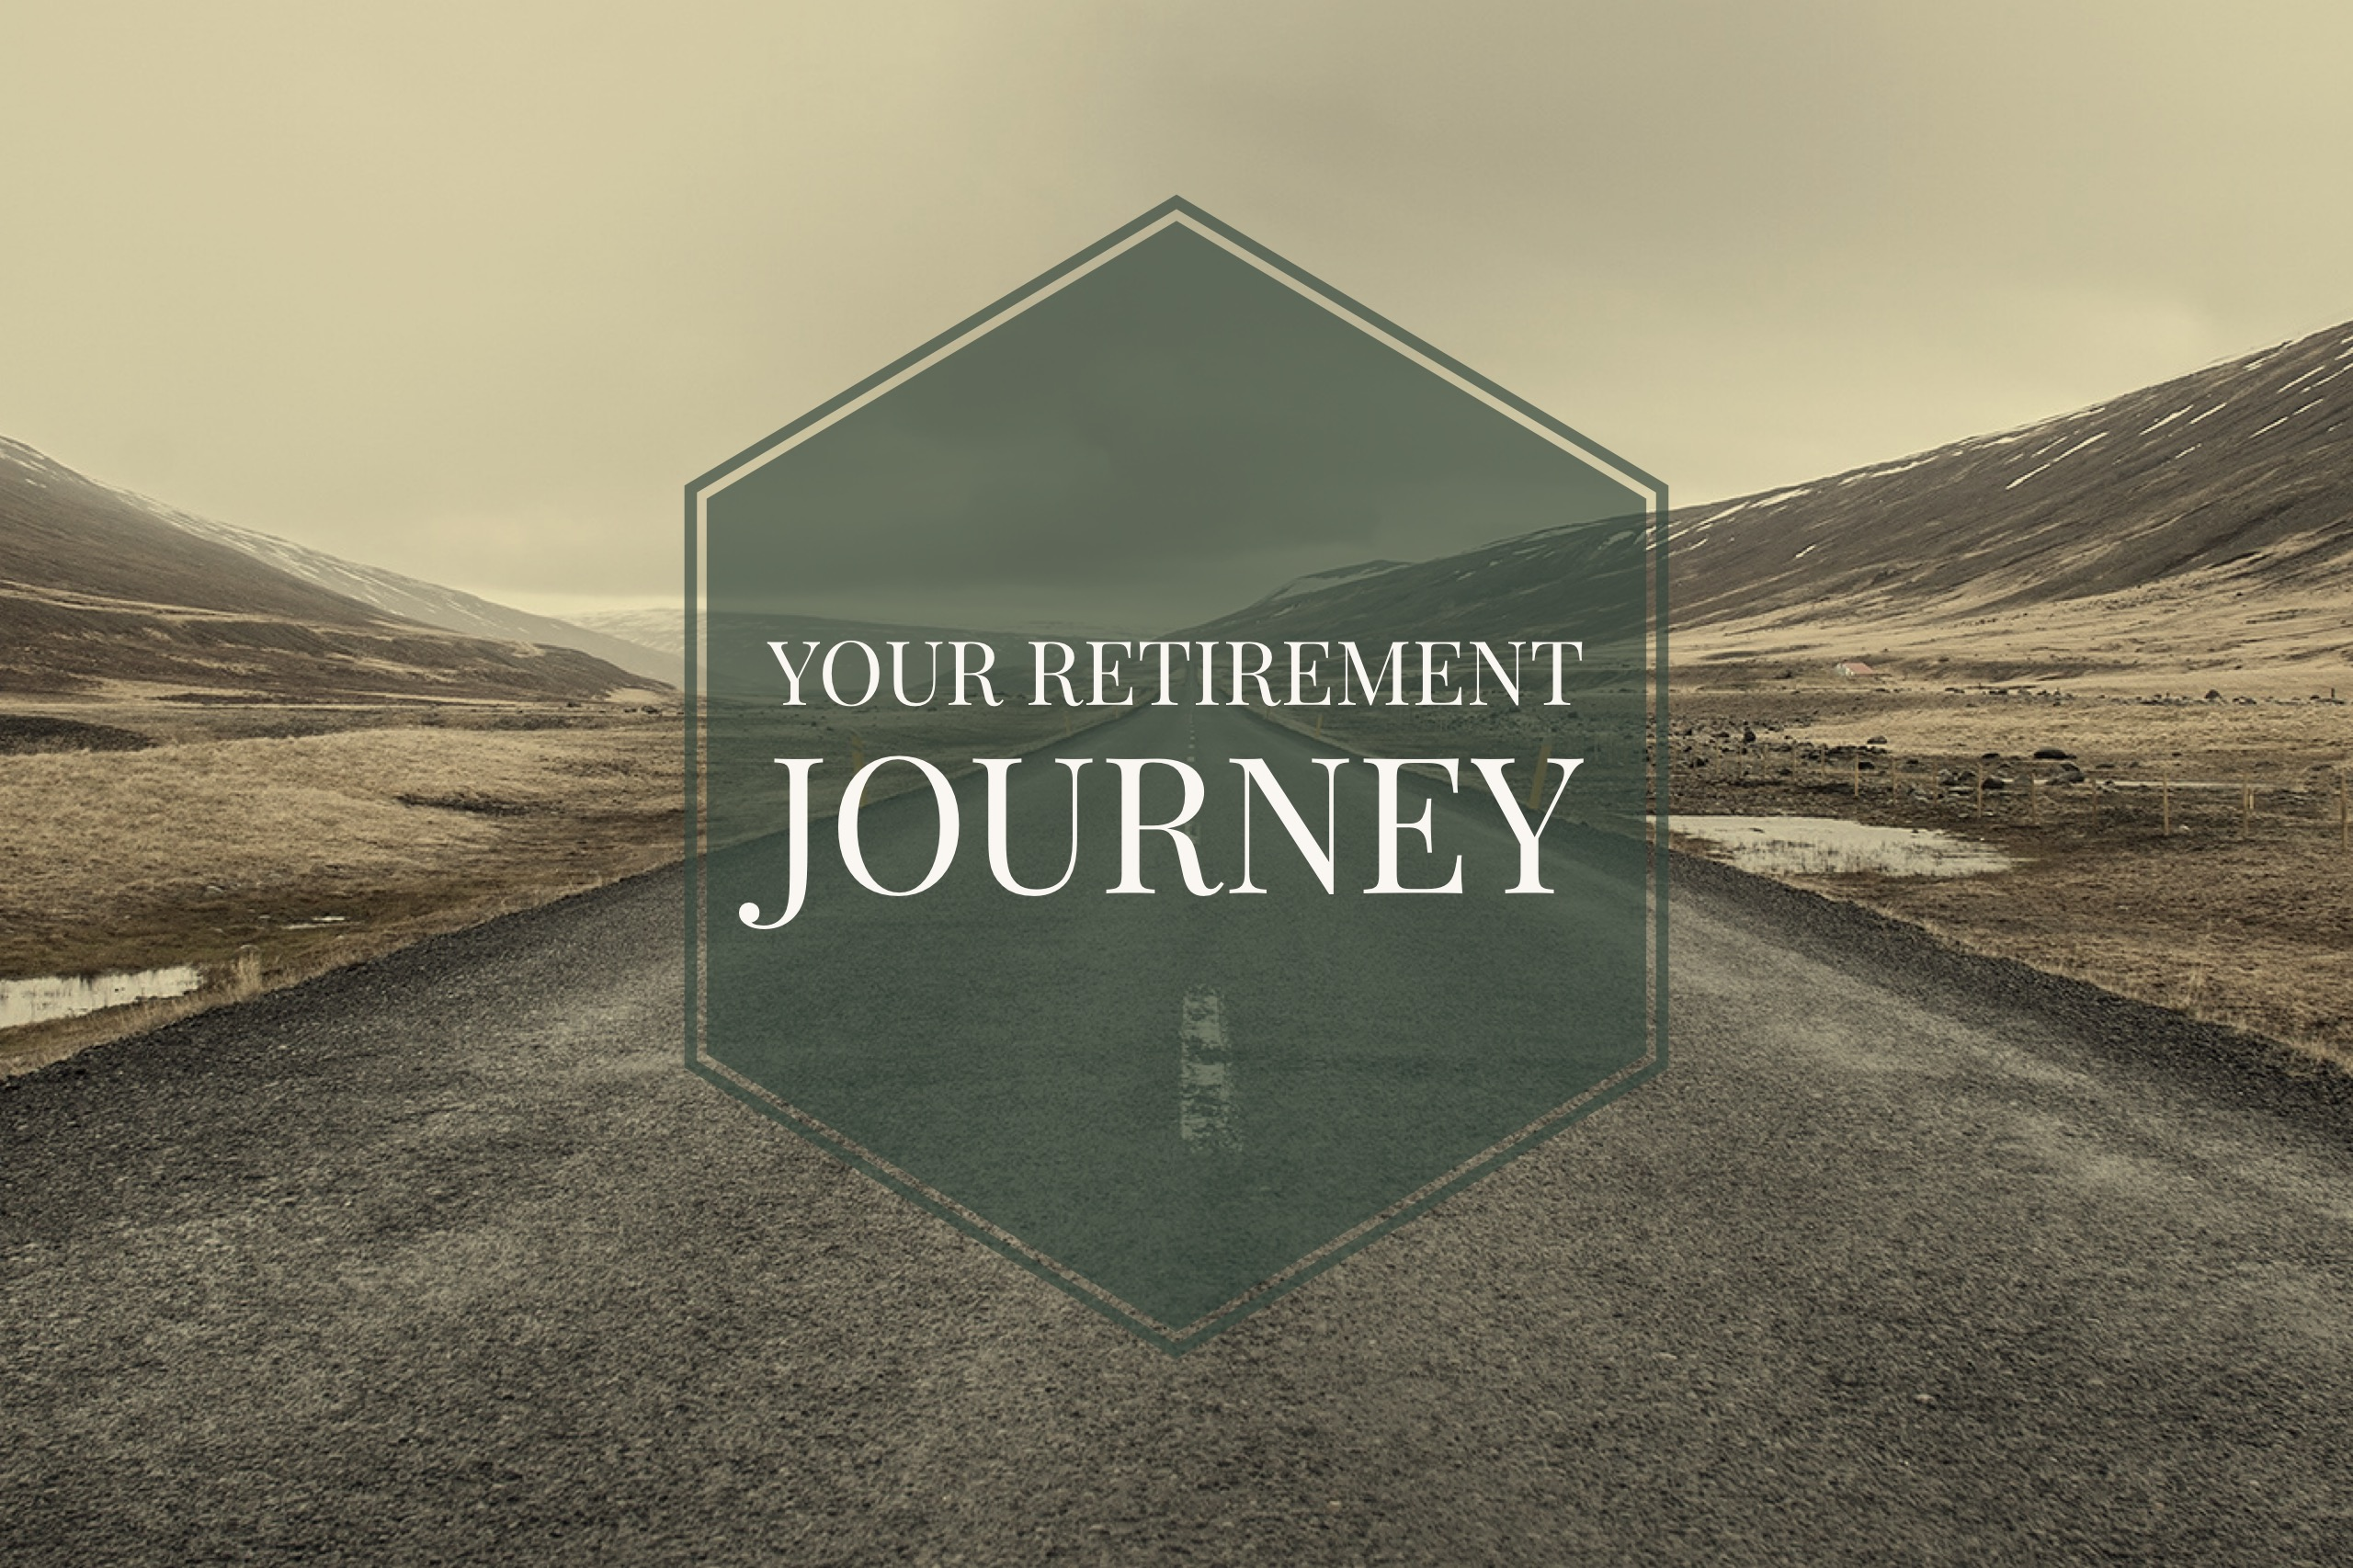 YourRetirementJourney